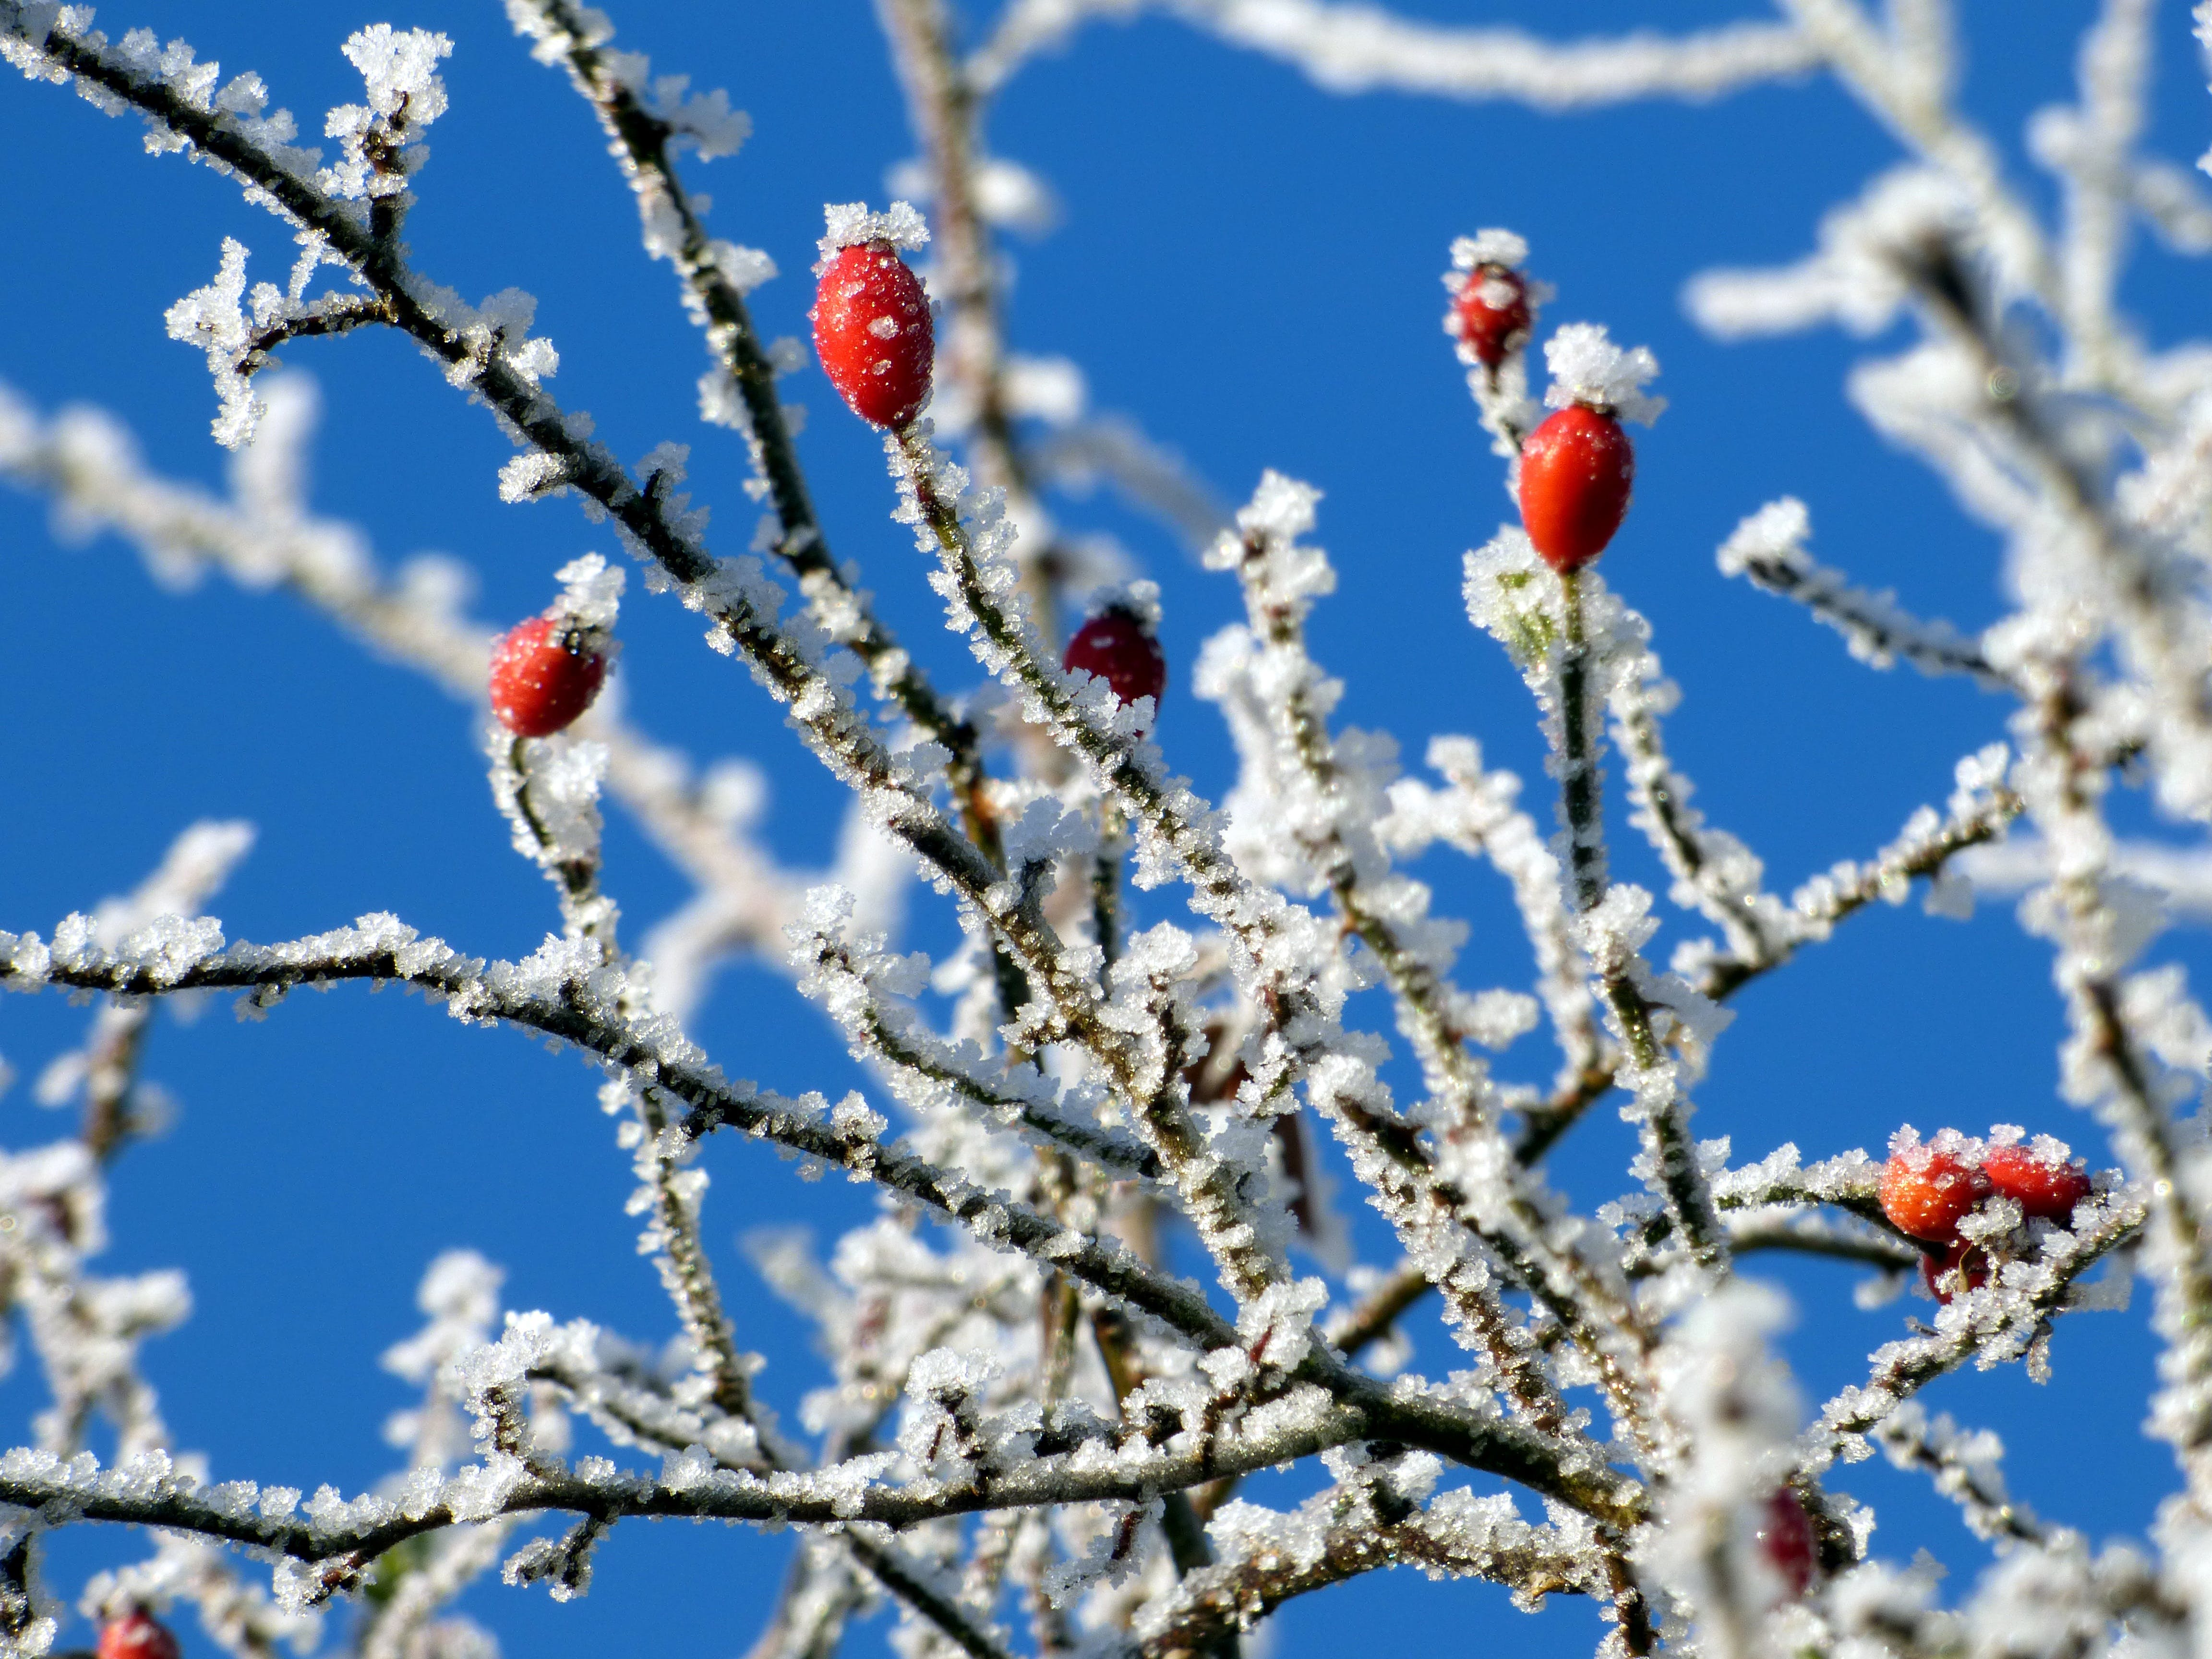 Red Fruits With White Snow